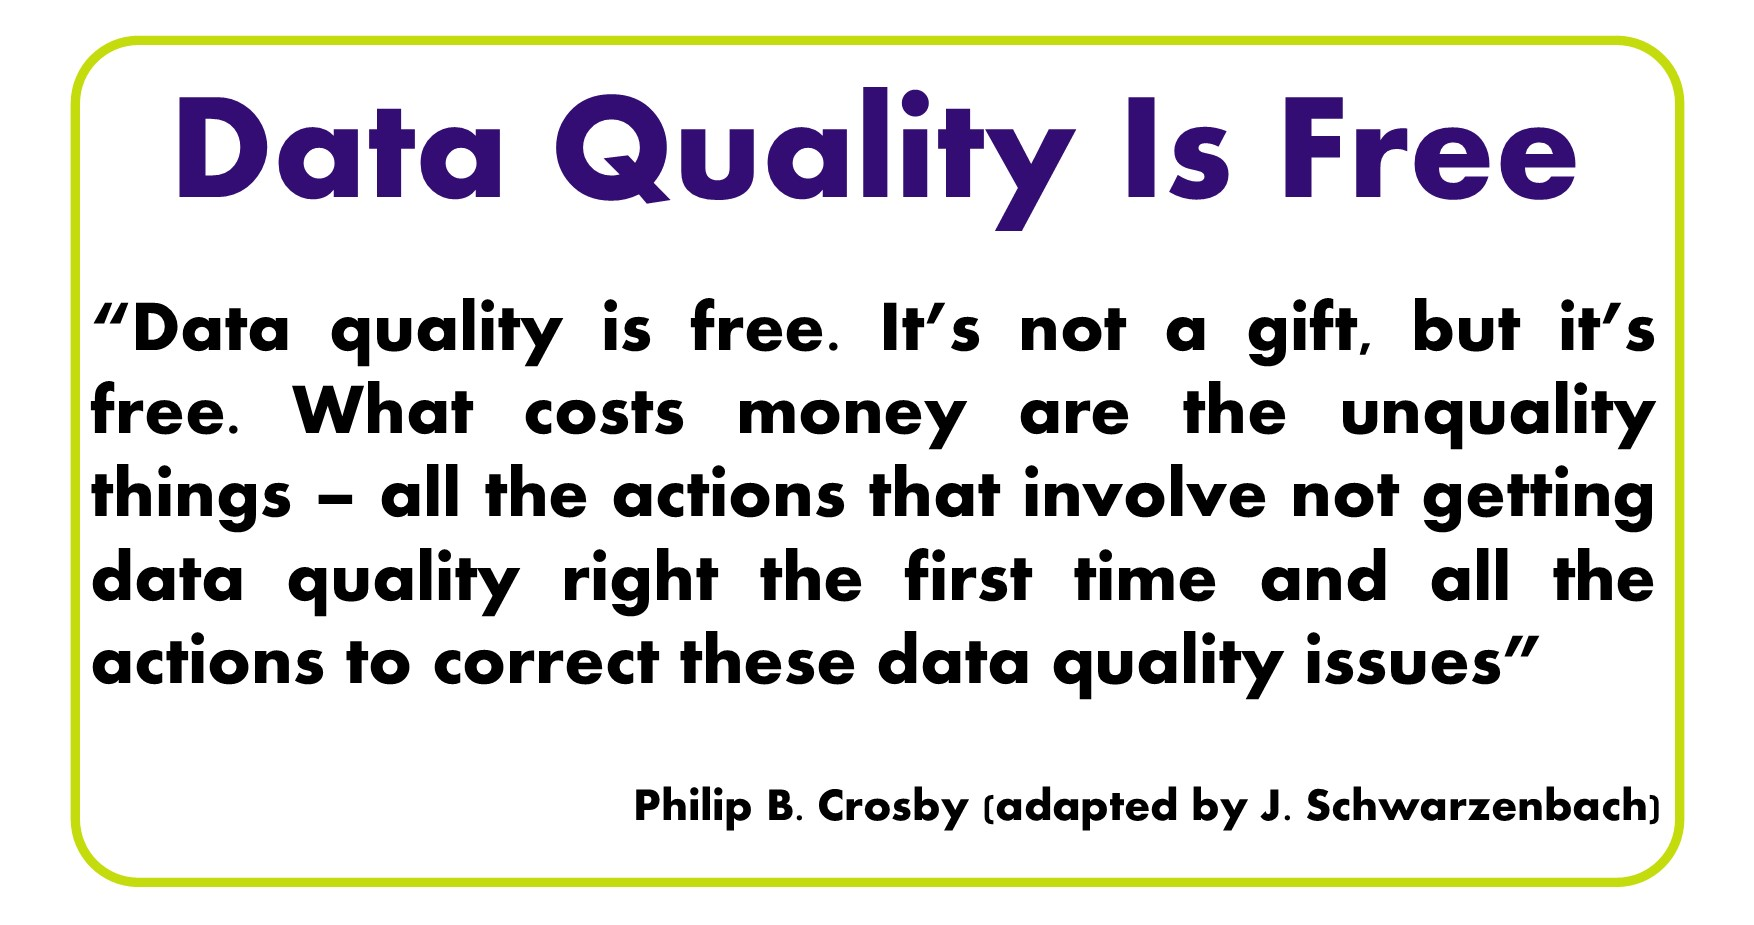 Data quality is free